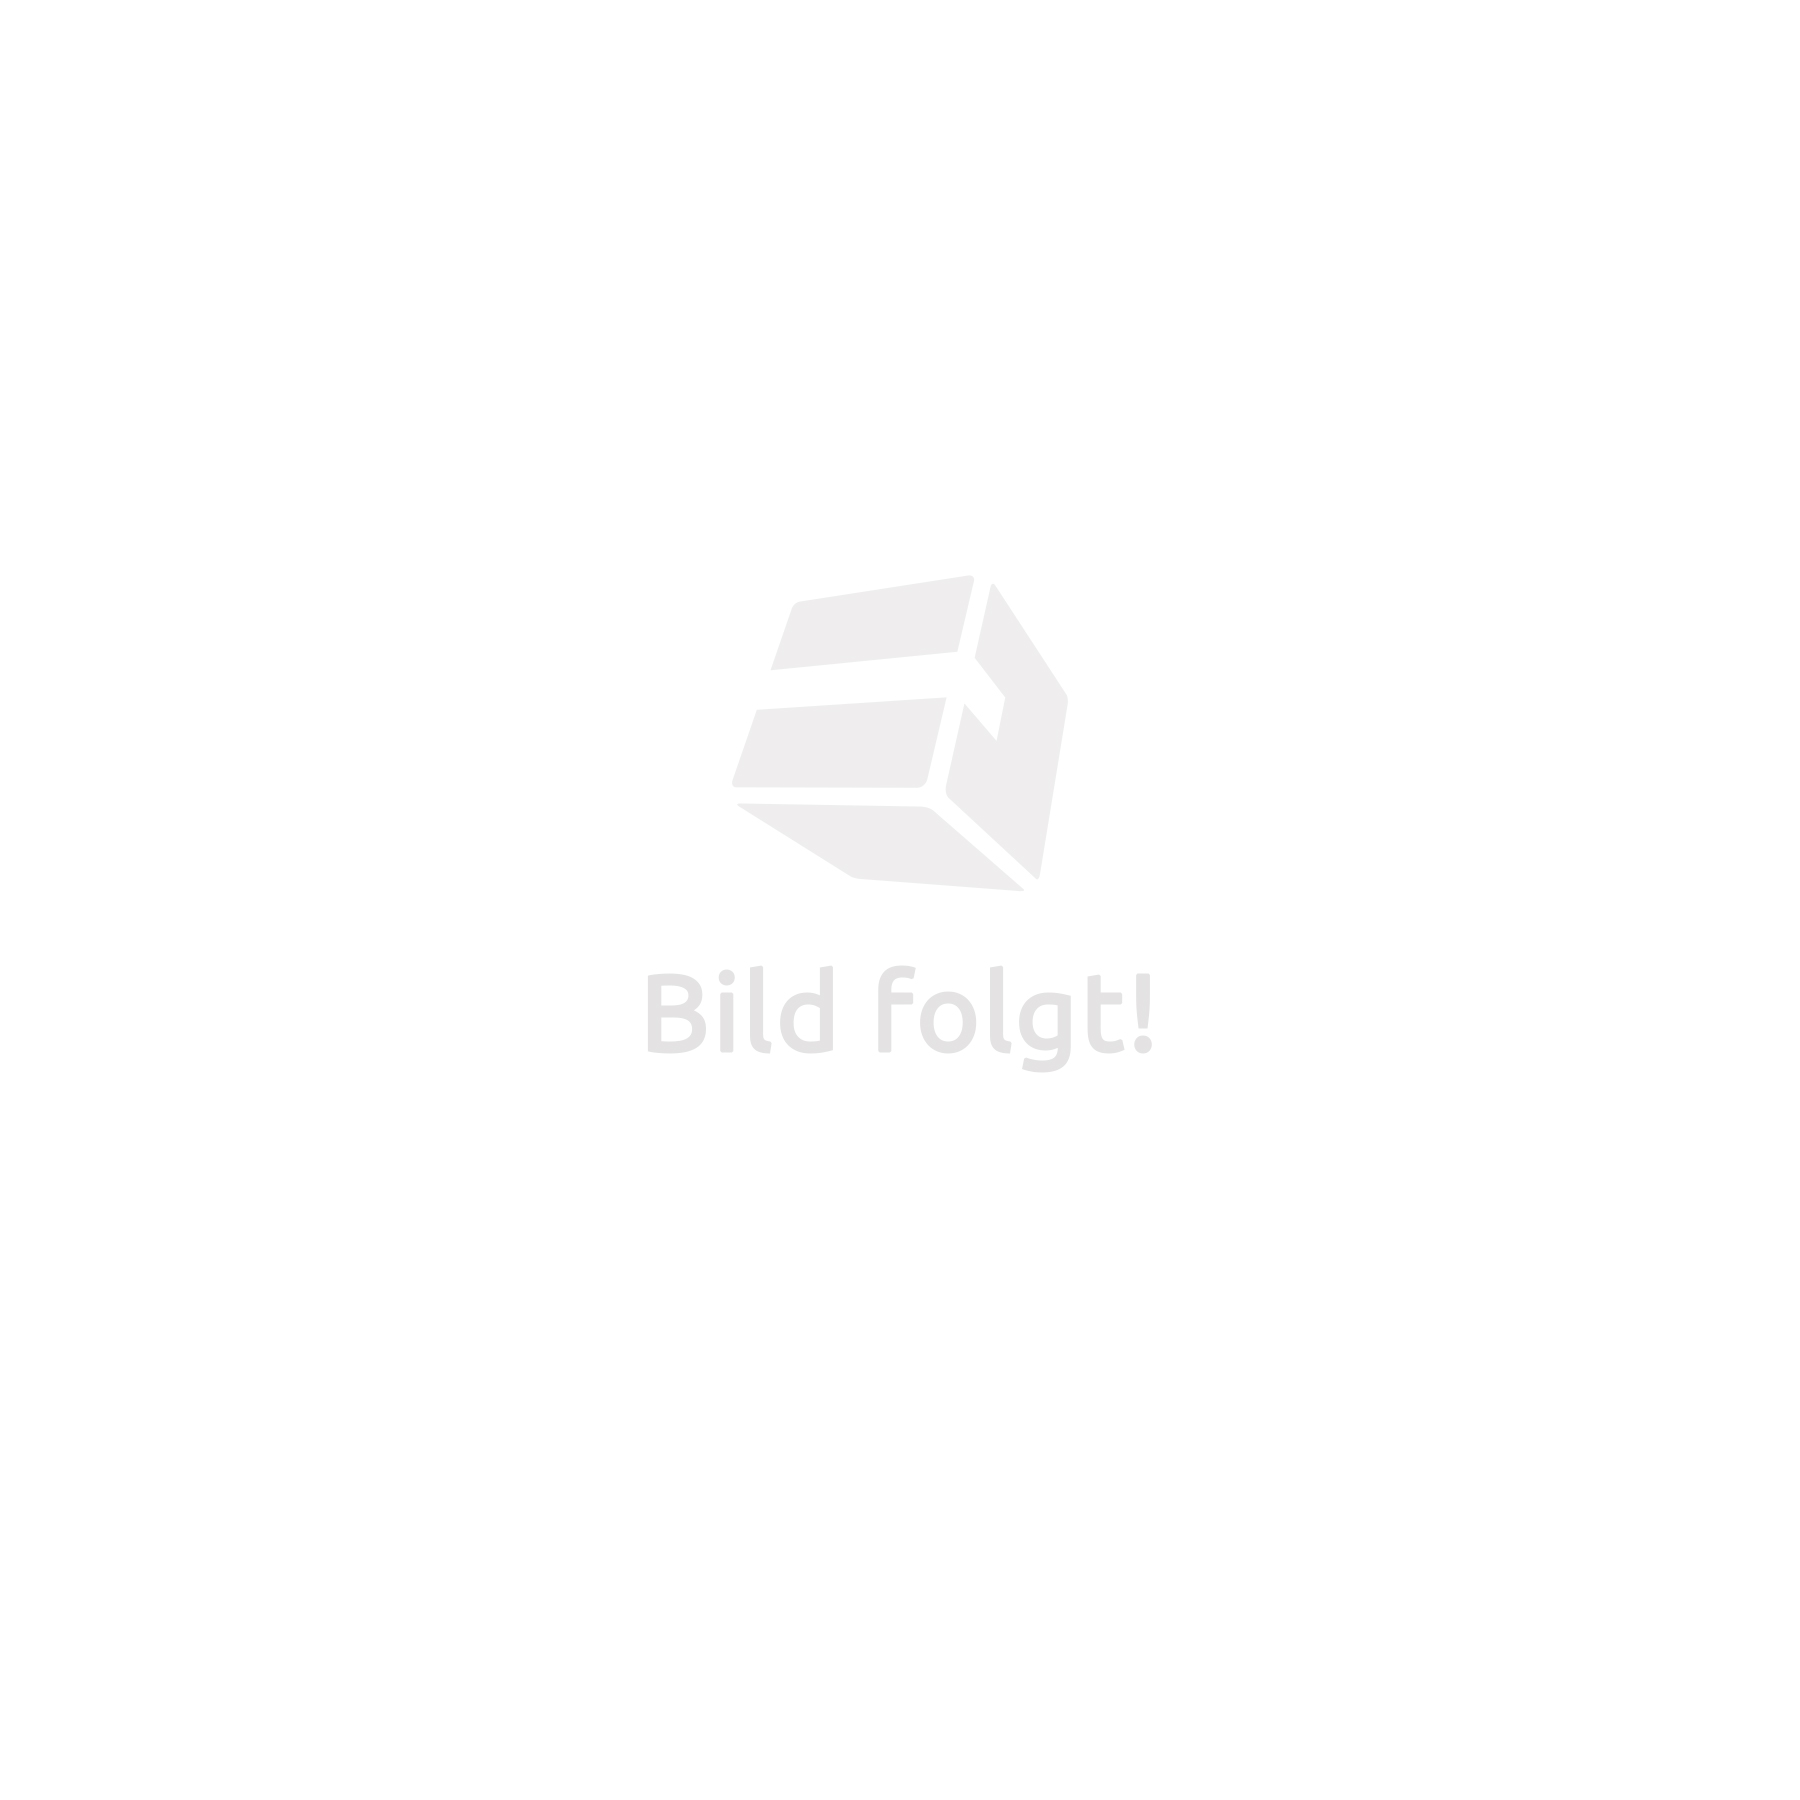 Shop Cheap Dutch Oven Cookware Set Made Of Cast Iron In Wooden Box Online Tectake